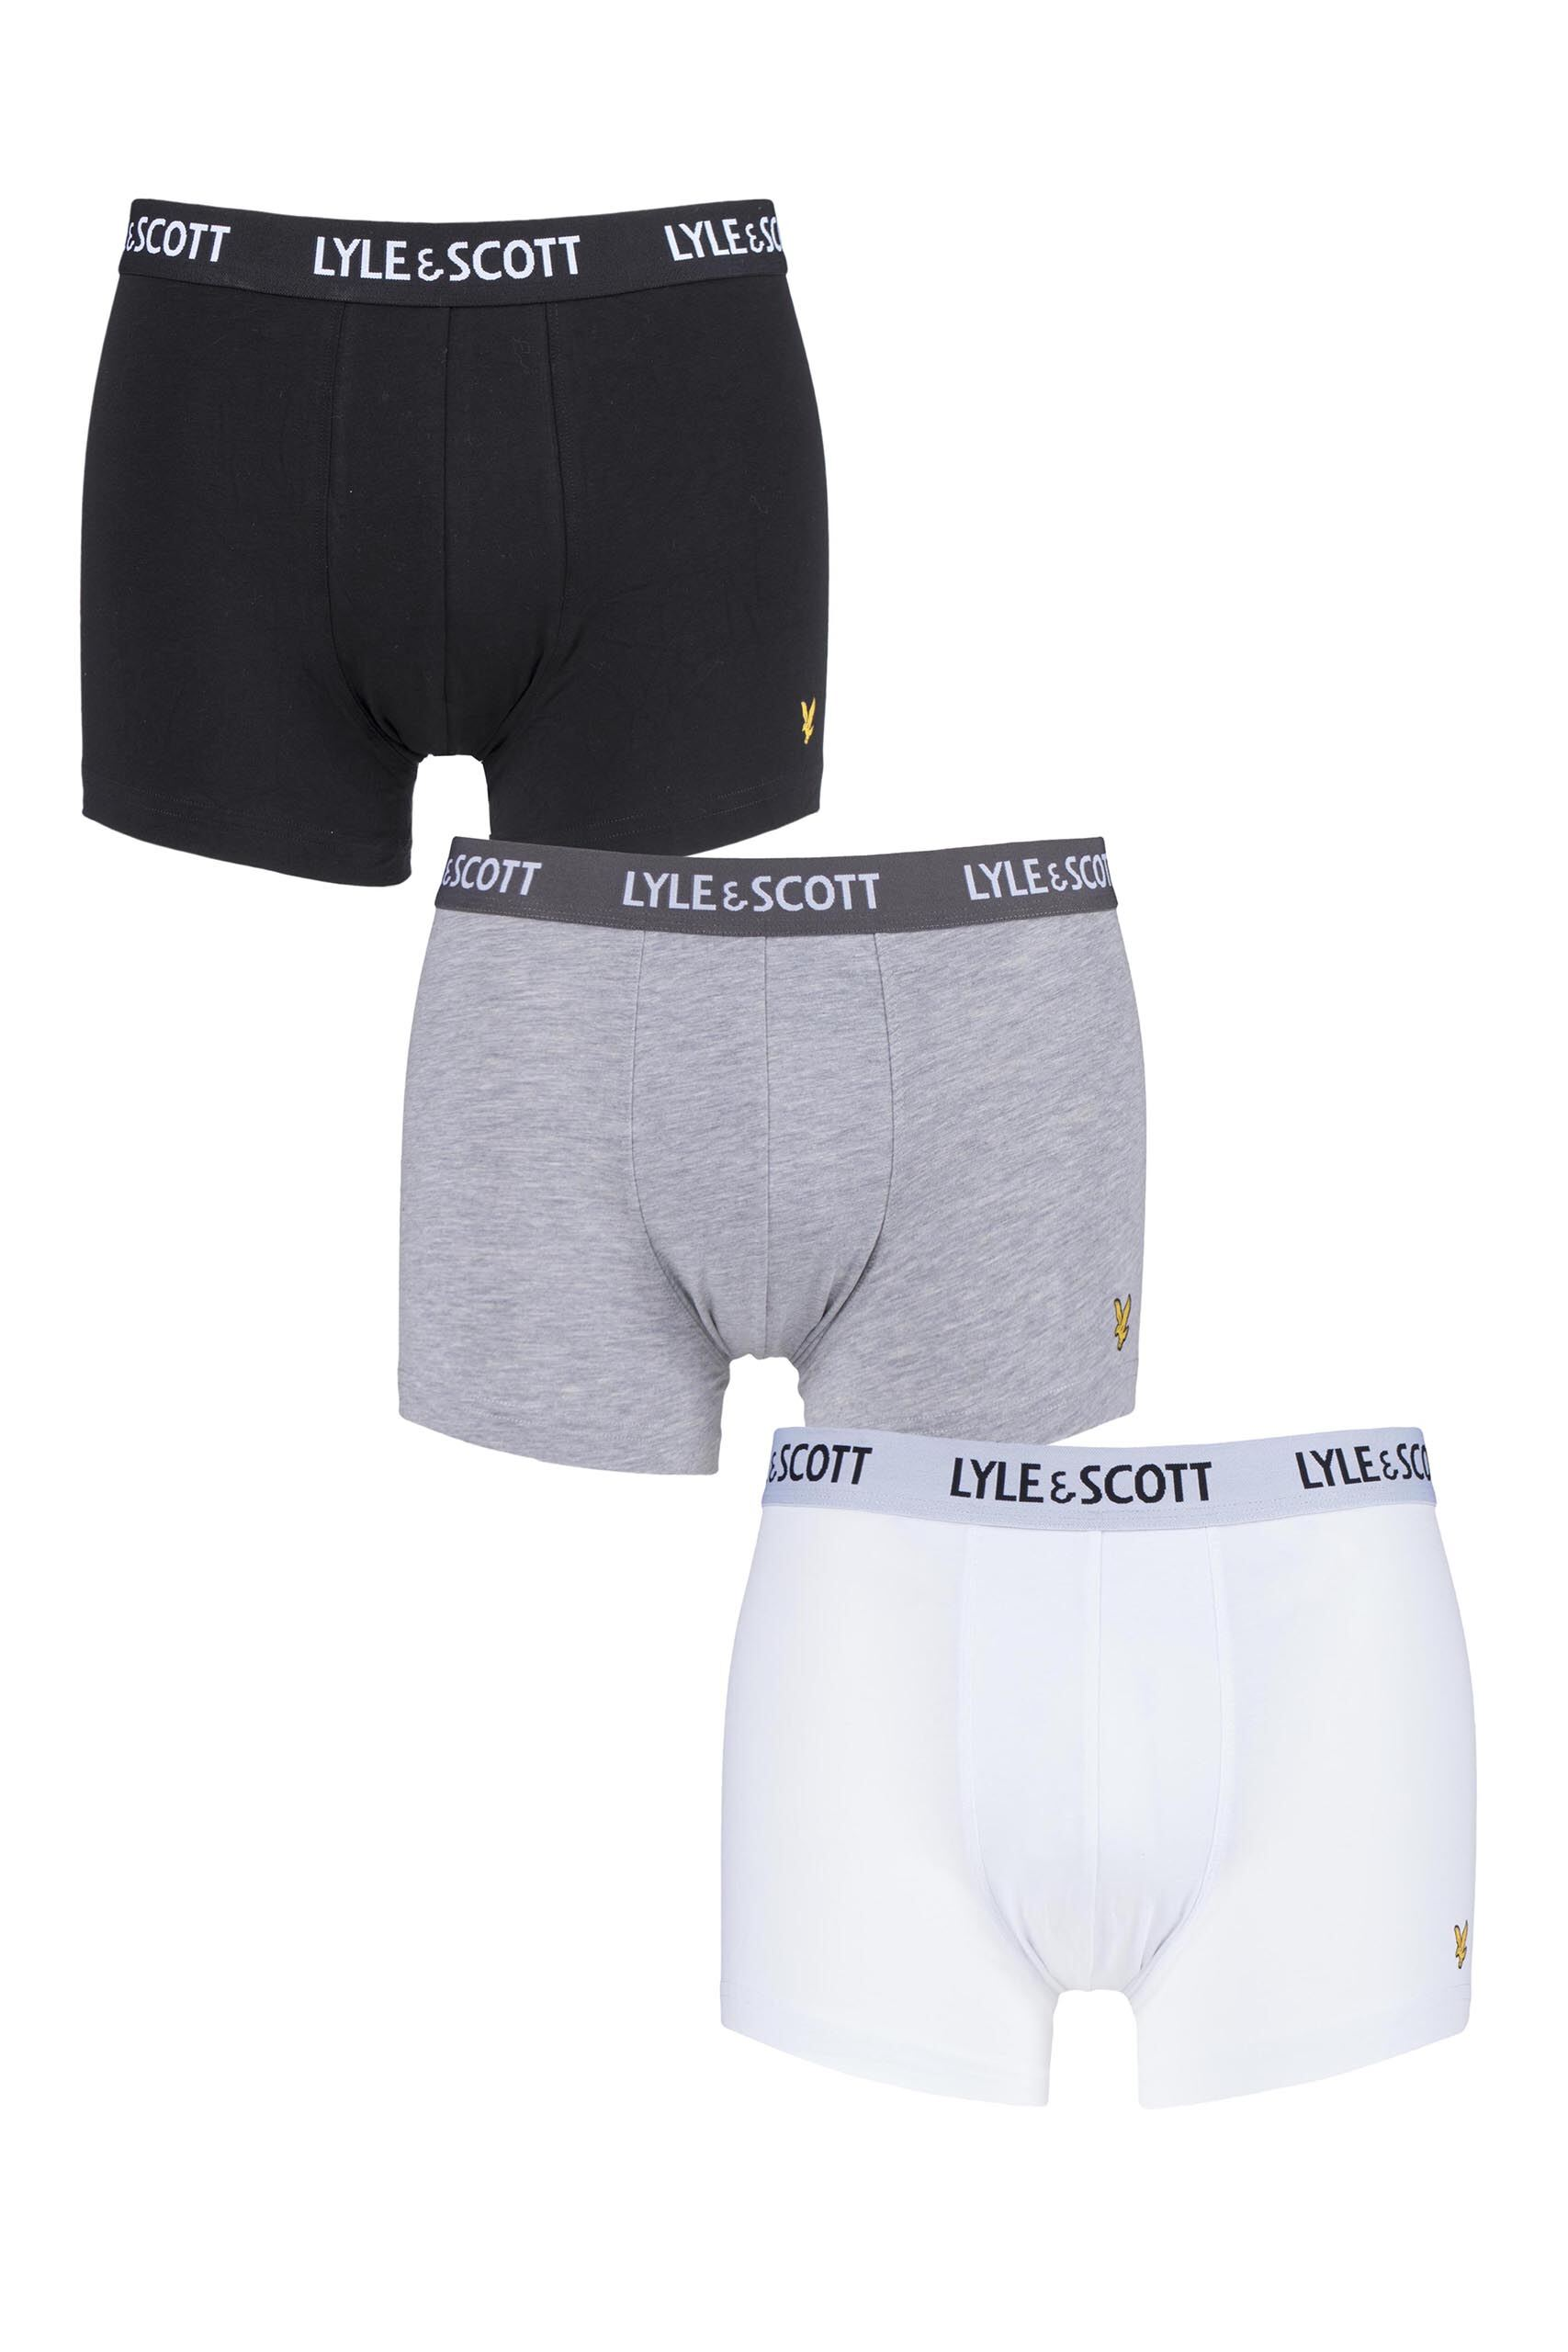 Image of 3 Pair Multi Barclay Cotton Stretch Trunks Men's Small - Lyle & Scott